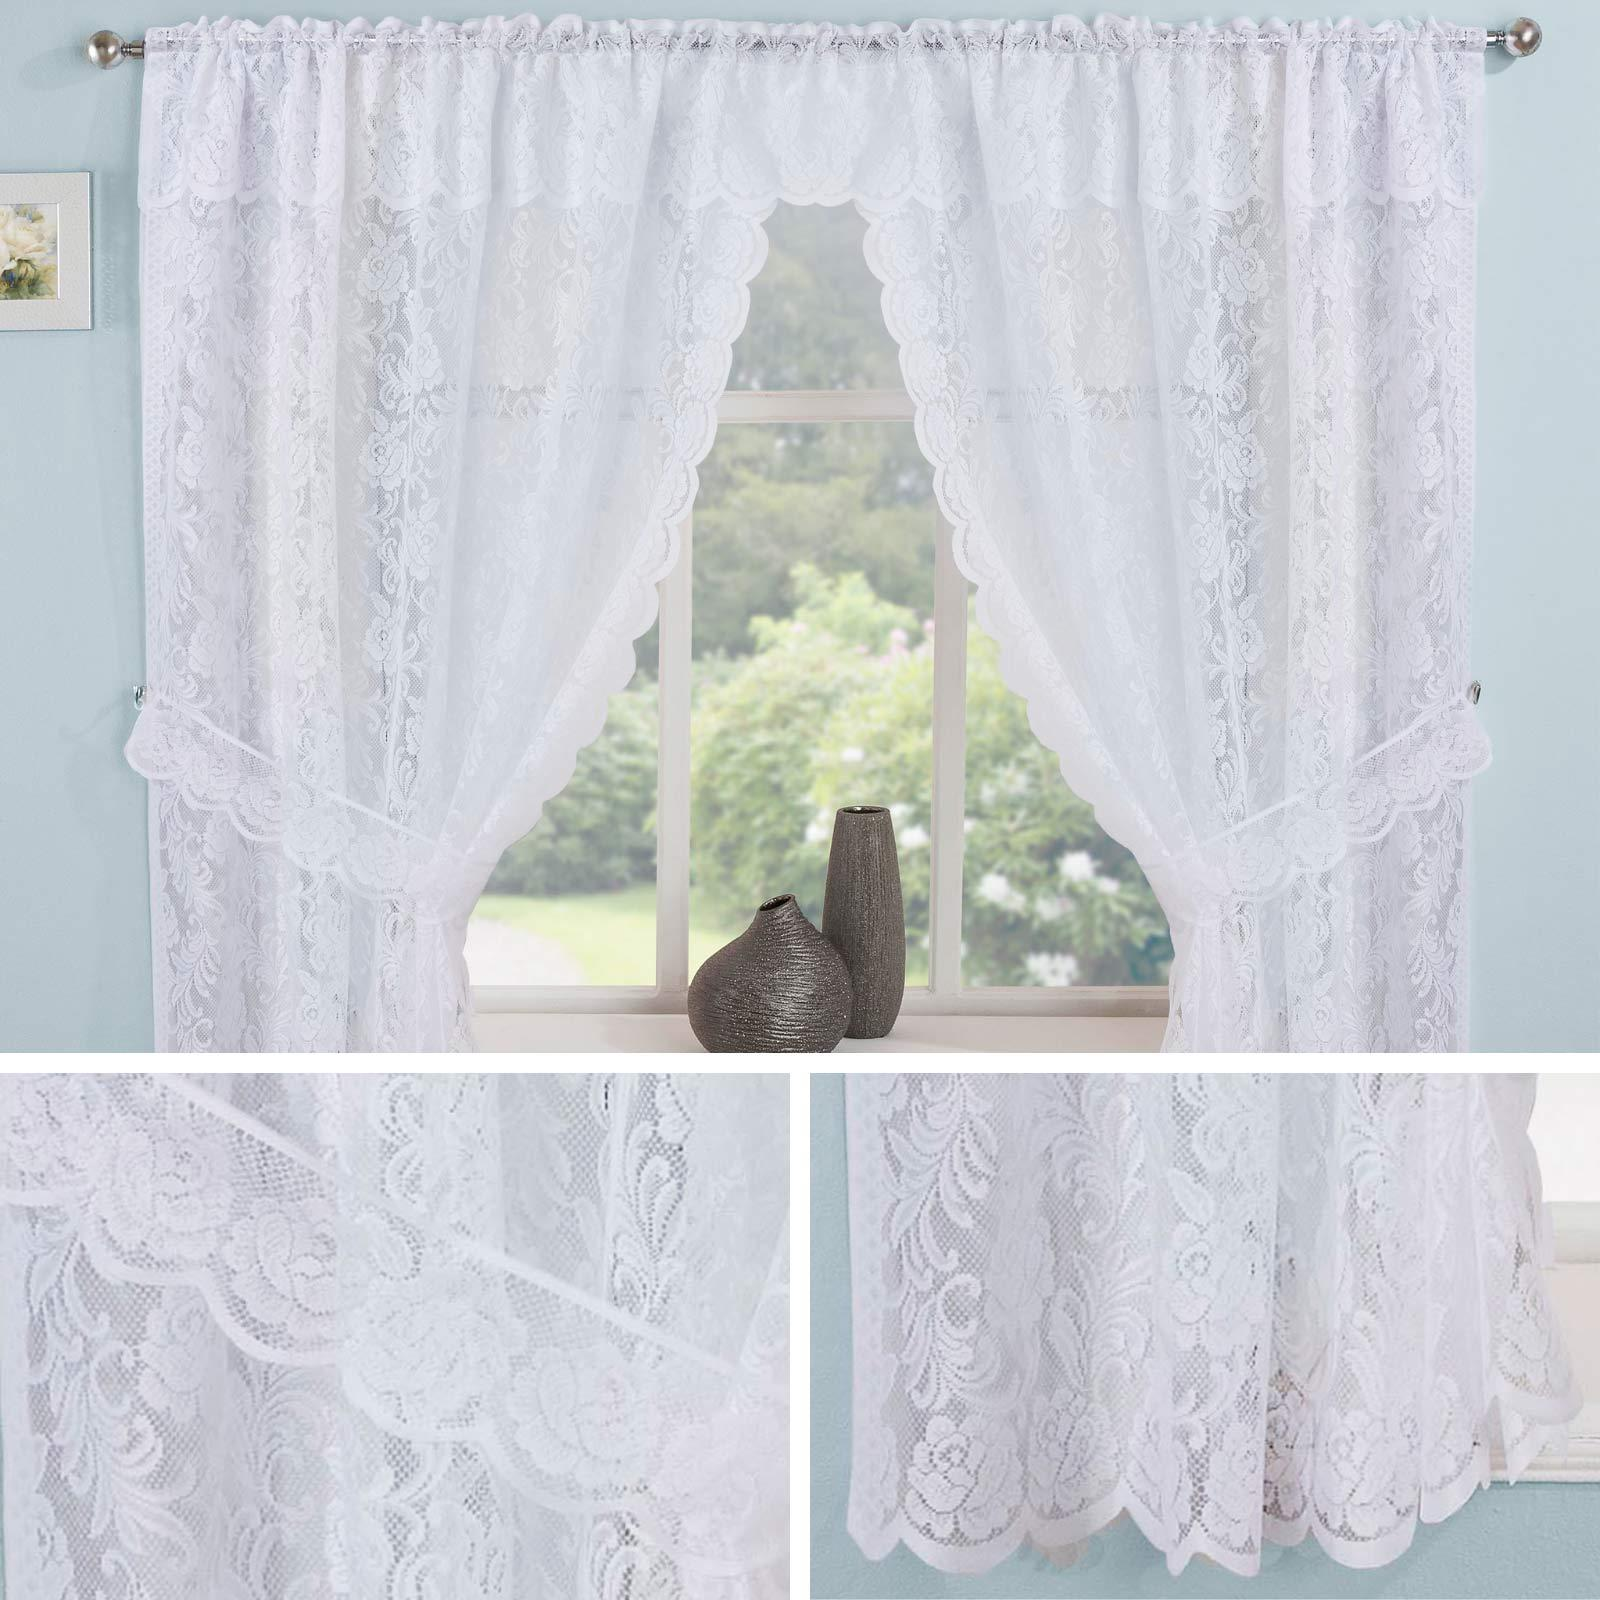 Lace Curtain Sets White Kew Complete Kitchen Window Floral Ready Made Curtains Ebay